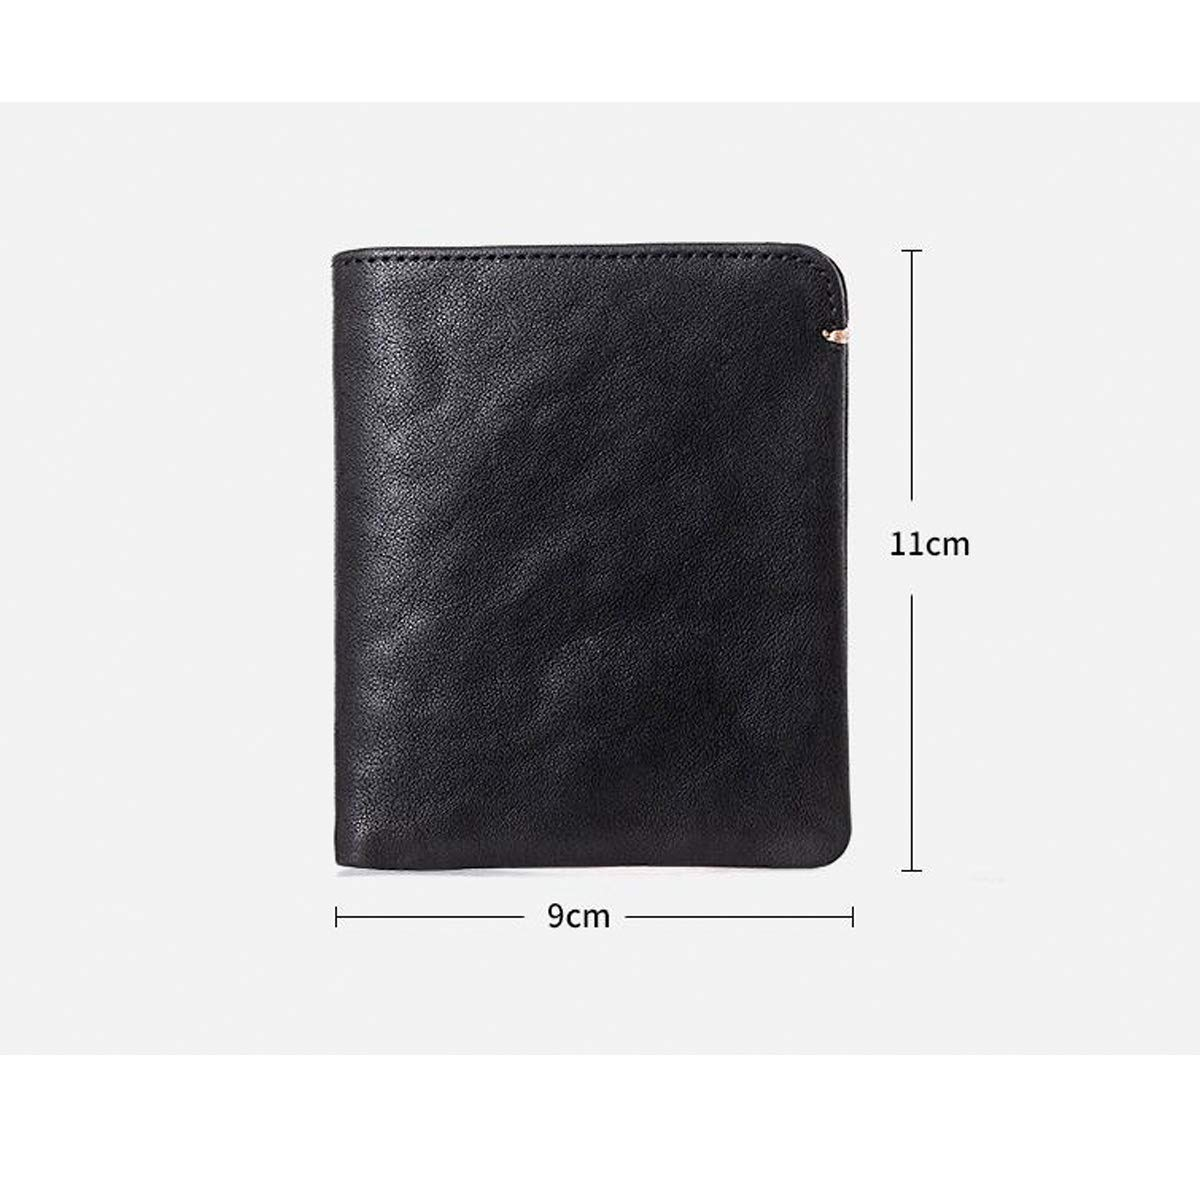 Kalmar RFID Travel Wallet Stealth Mode Mens Leather Bifold Wallet Clutch Mens Gift Box Extra Capacity Travel Wallet Currency Storage Box Black Color : Black Mens RFID Wallet